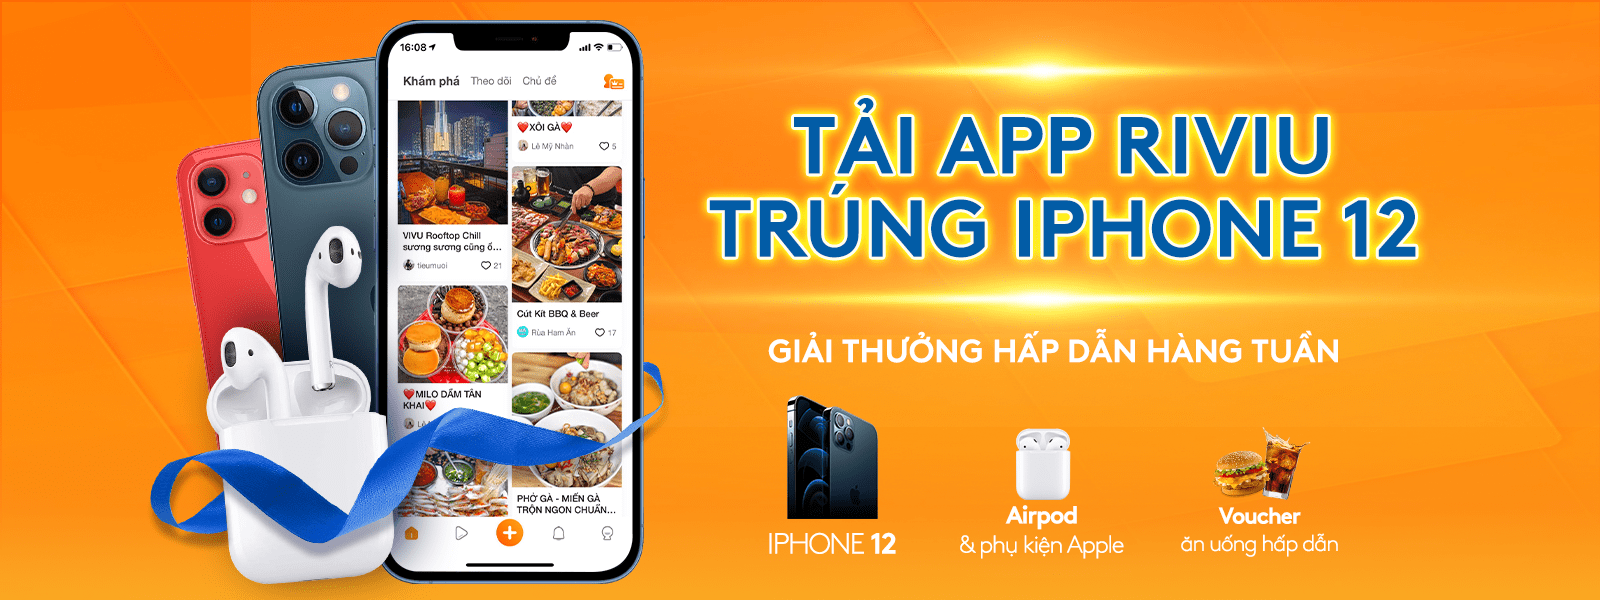 AAAA-event-trung-iphone12